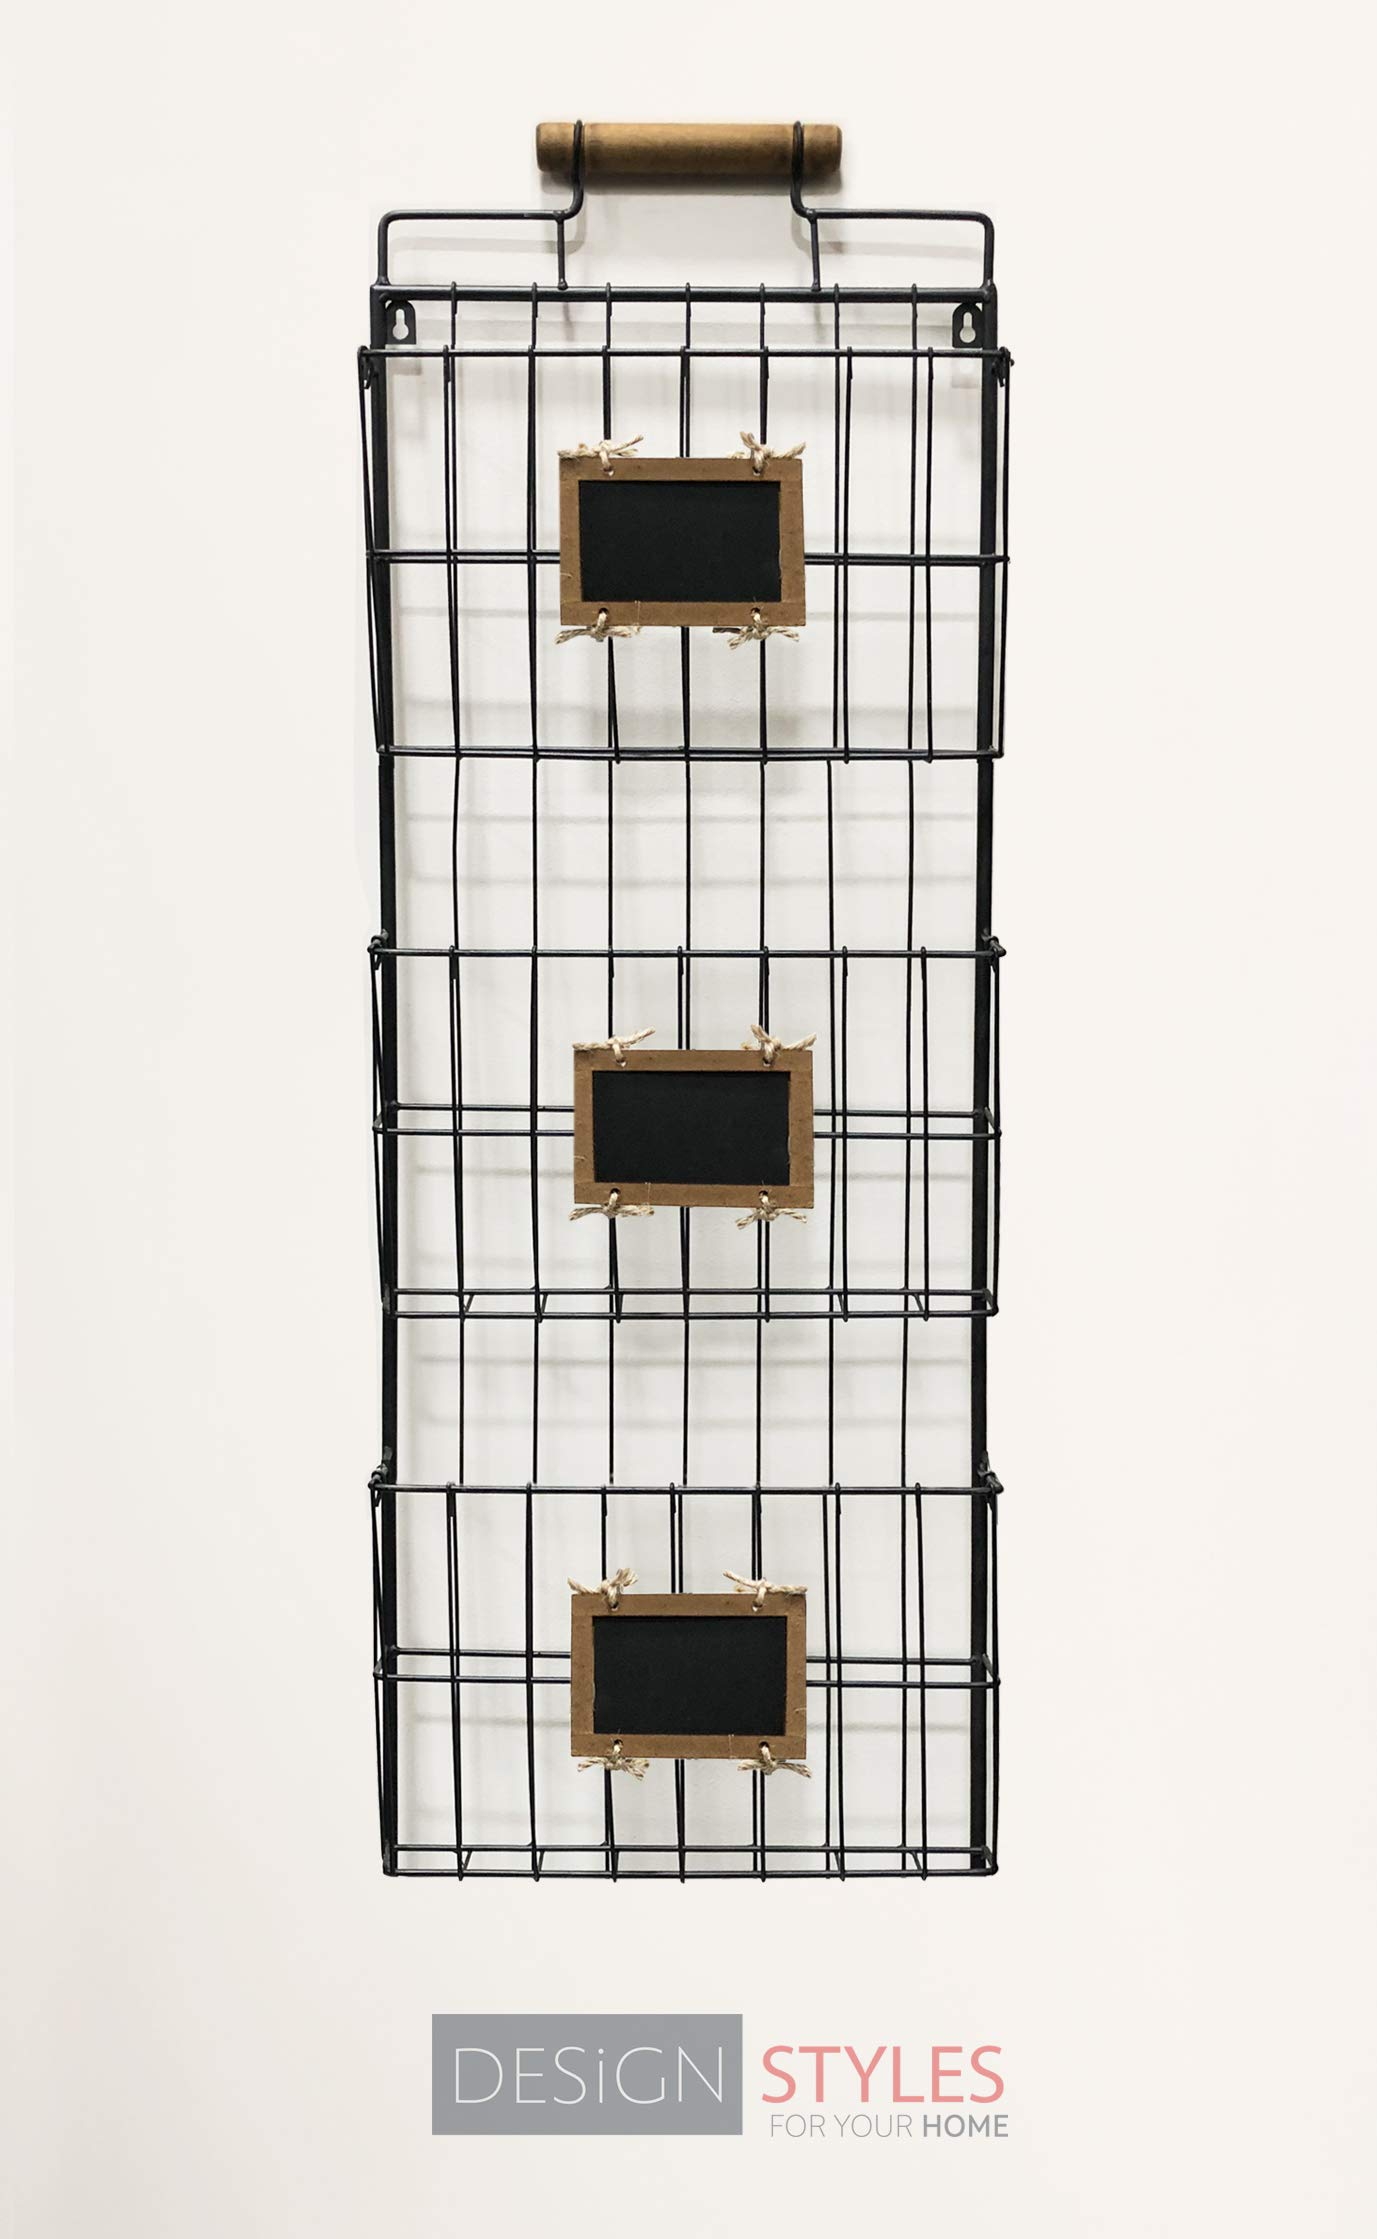 Wall File Holder with Wood Handle - Black, Three Tier Durable Metal Rack with Spacious Slots for Easy Organization, Mounts on Wall and Door for Office, Home, and Work - by Designstyles by Designstyles